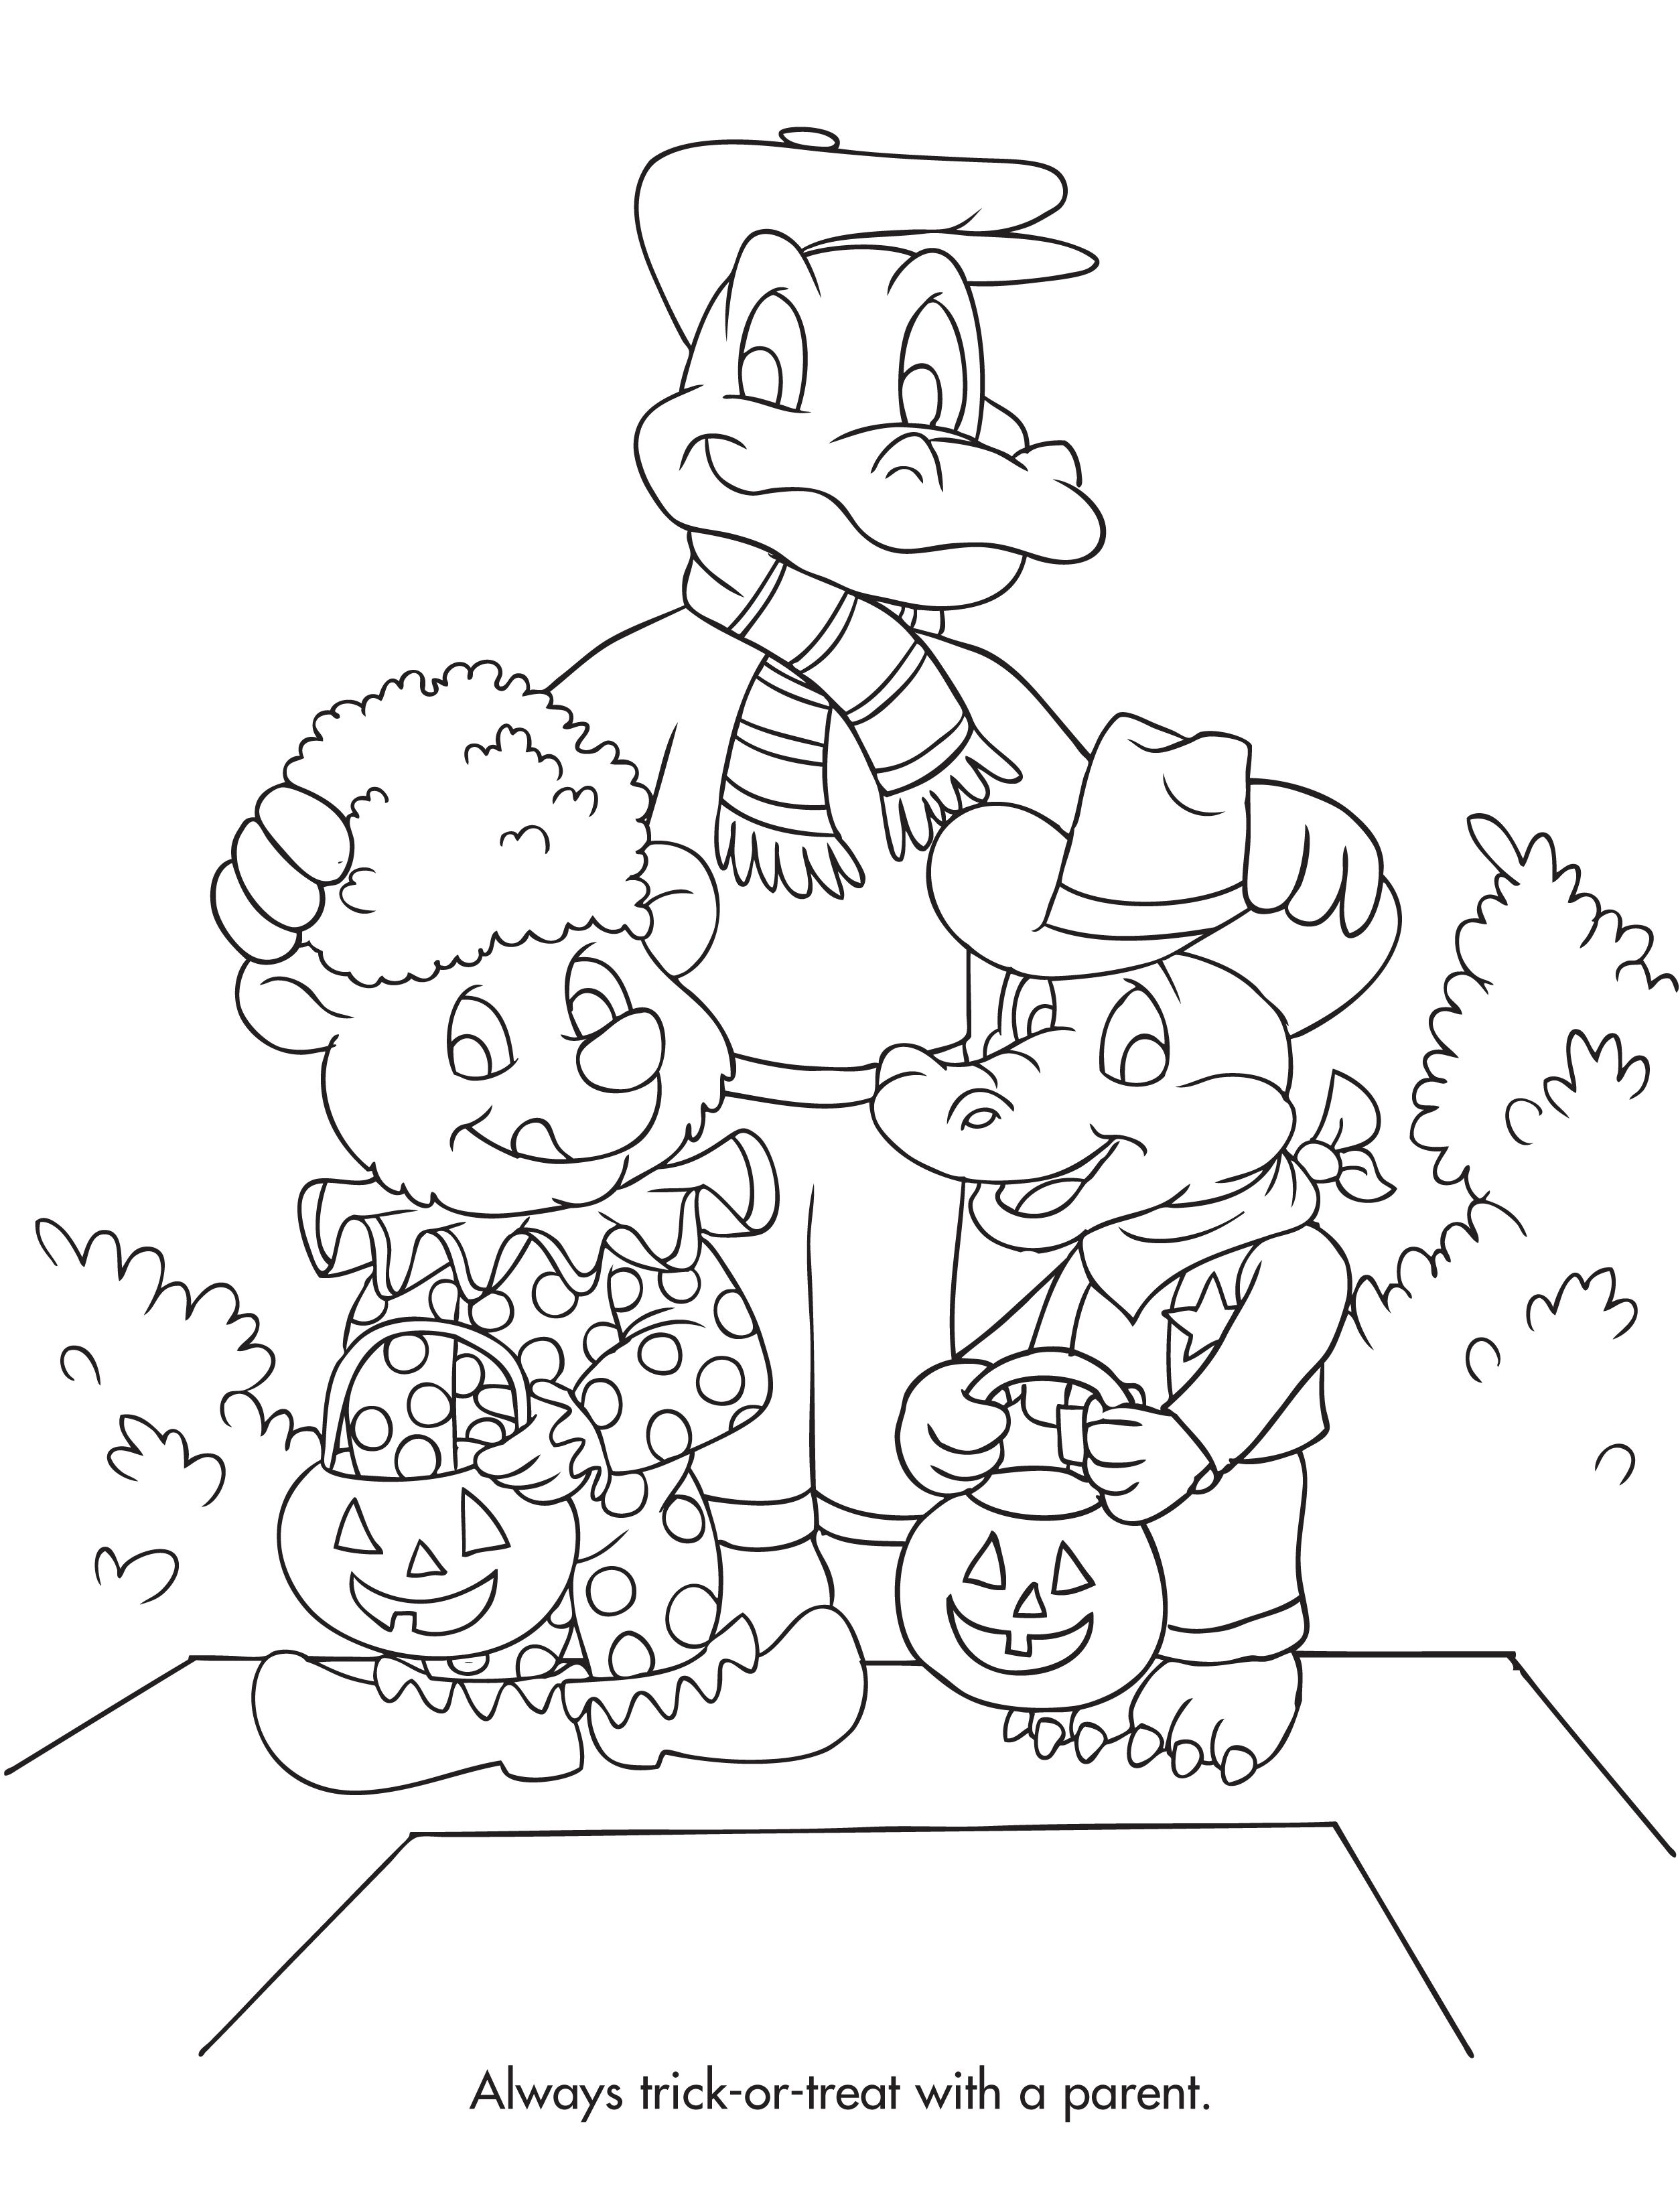 Uncategorized Halloween Safety Coloring Pages halloween safety coloring page and activity sheets page